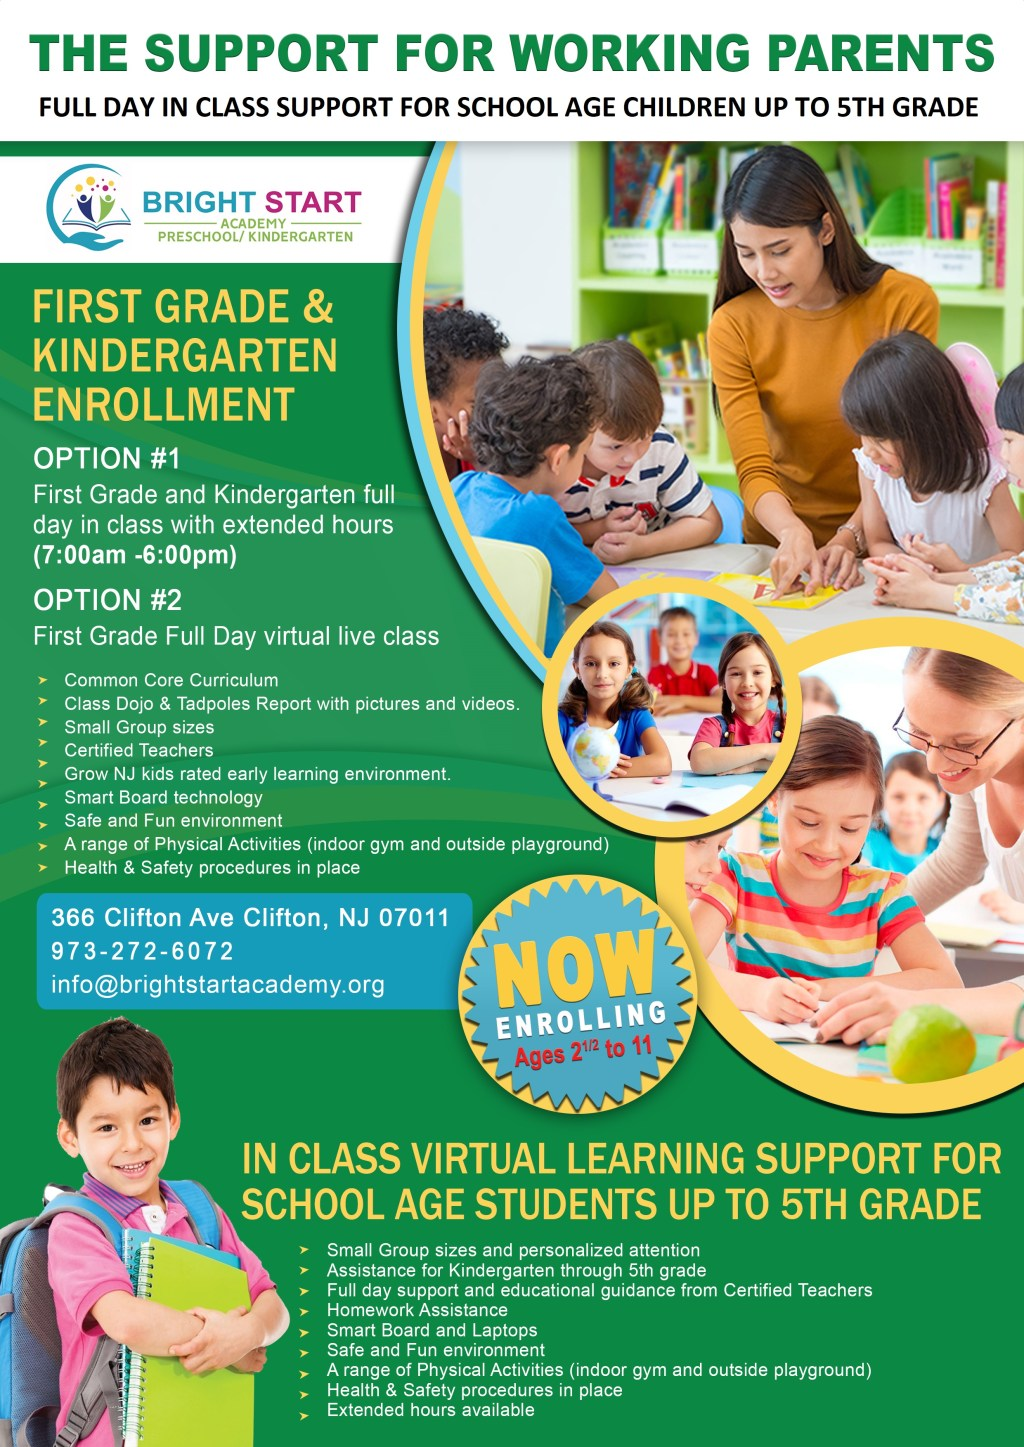 Full Day In Class Support For School Age Children Up to 5th Grade